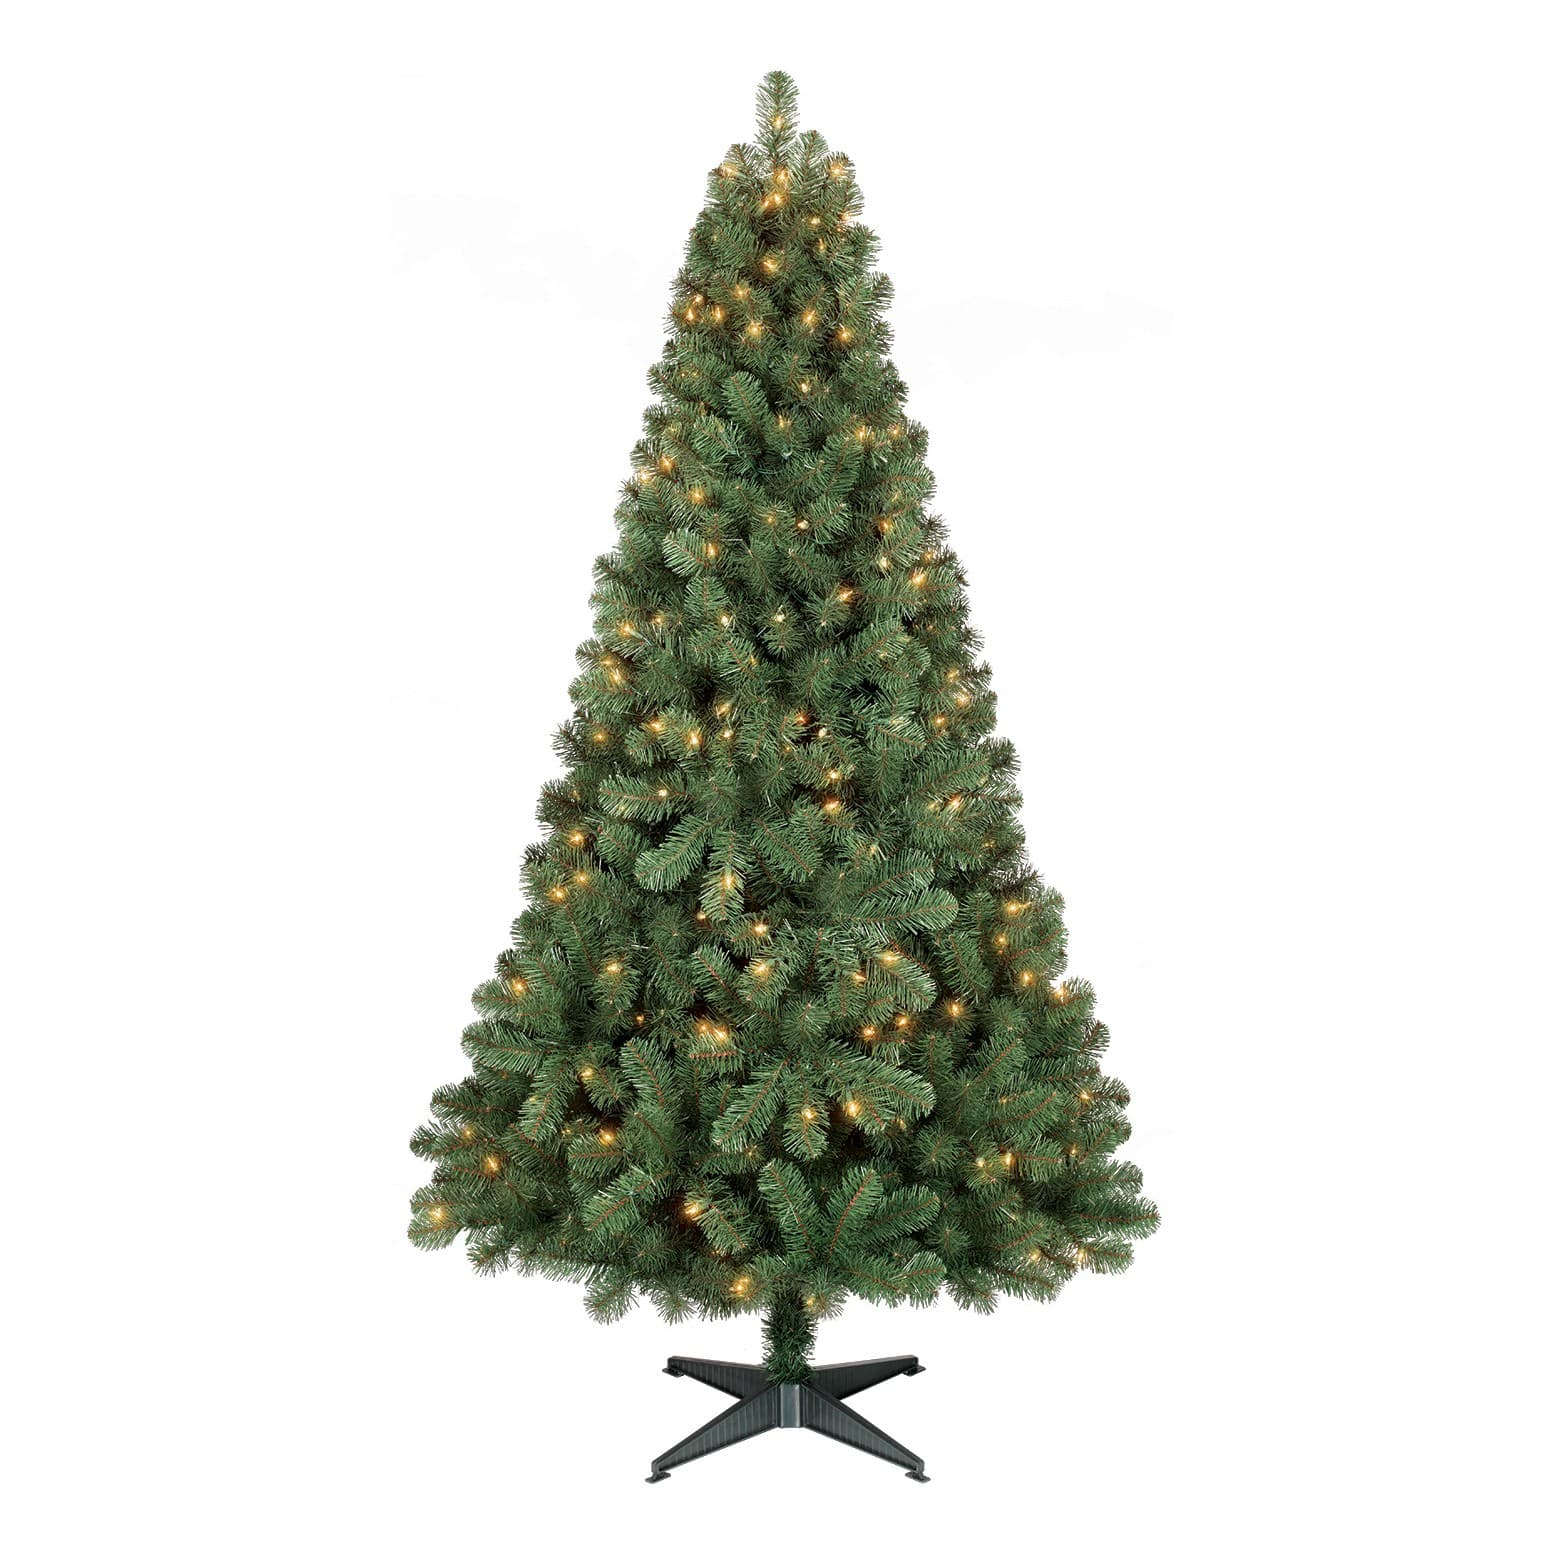 Christmas Outdoor Decorations Target: Holiday Decorations,Christmas Trees, Lights, Ornaments